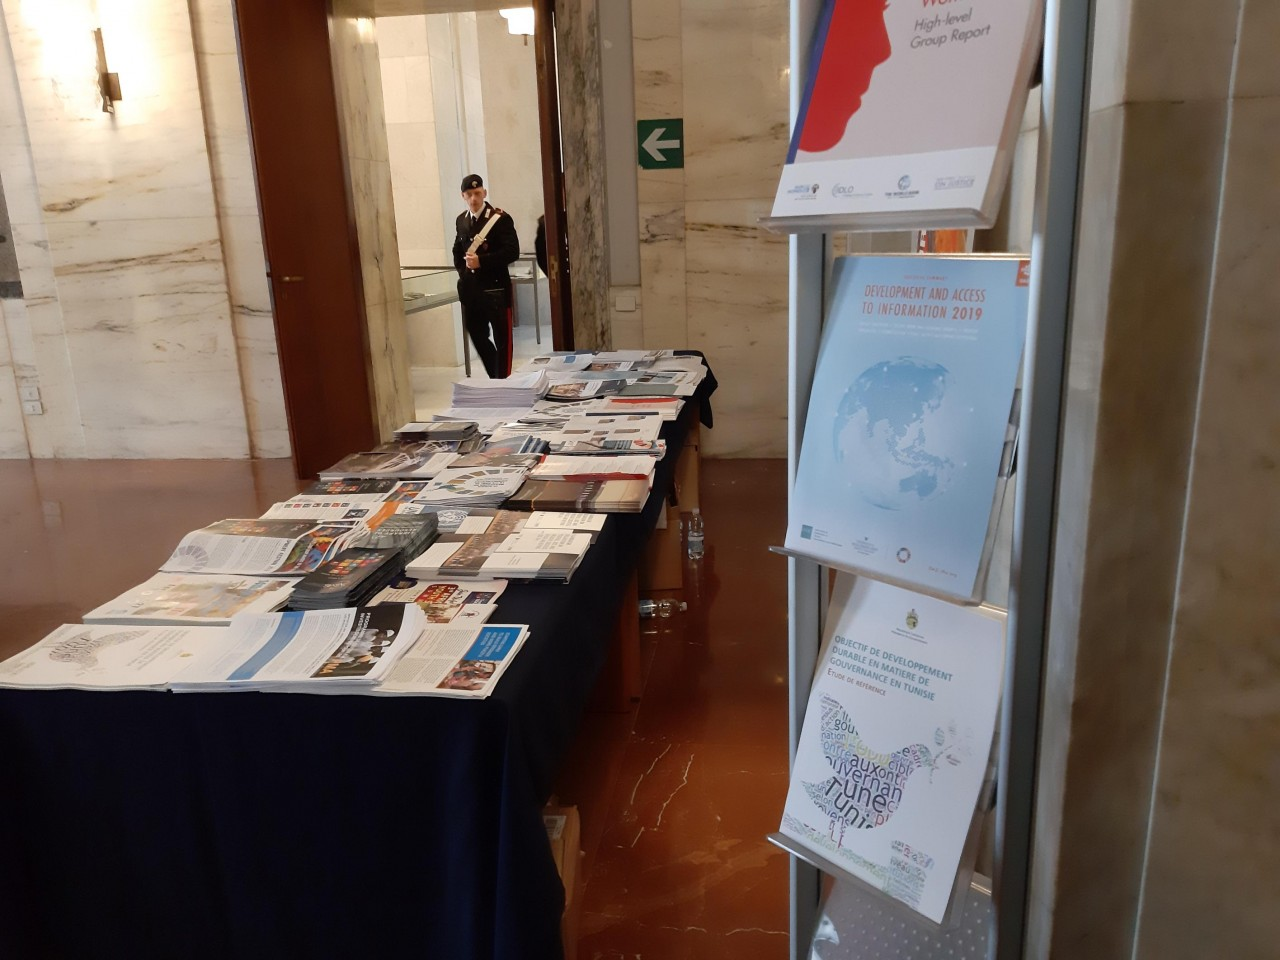 IFLA Development and Access to Information Report on display at UN SDG16 Meeting